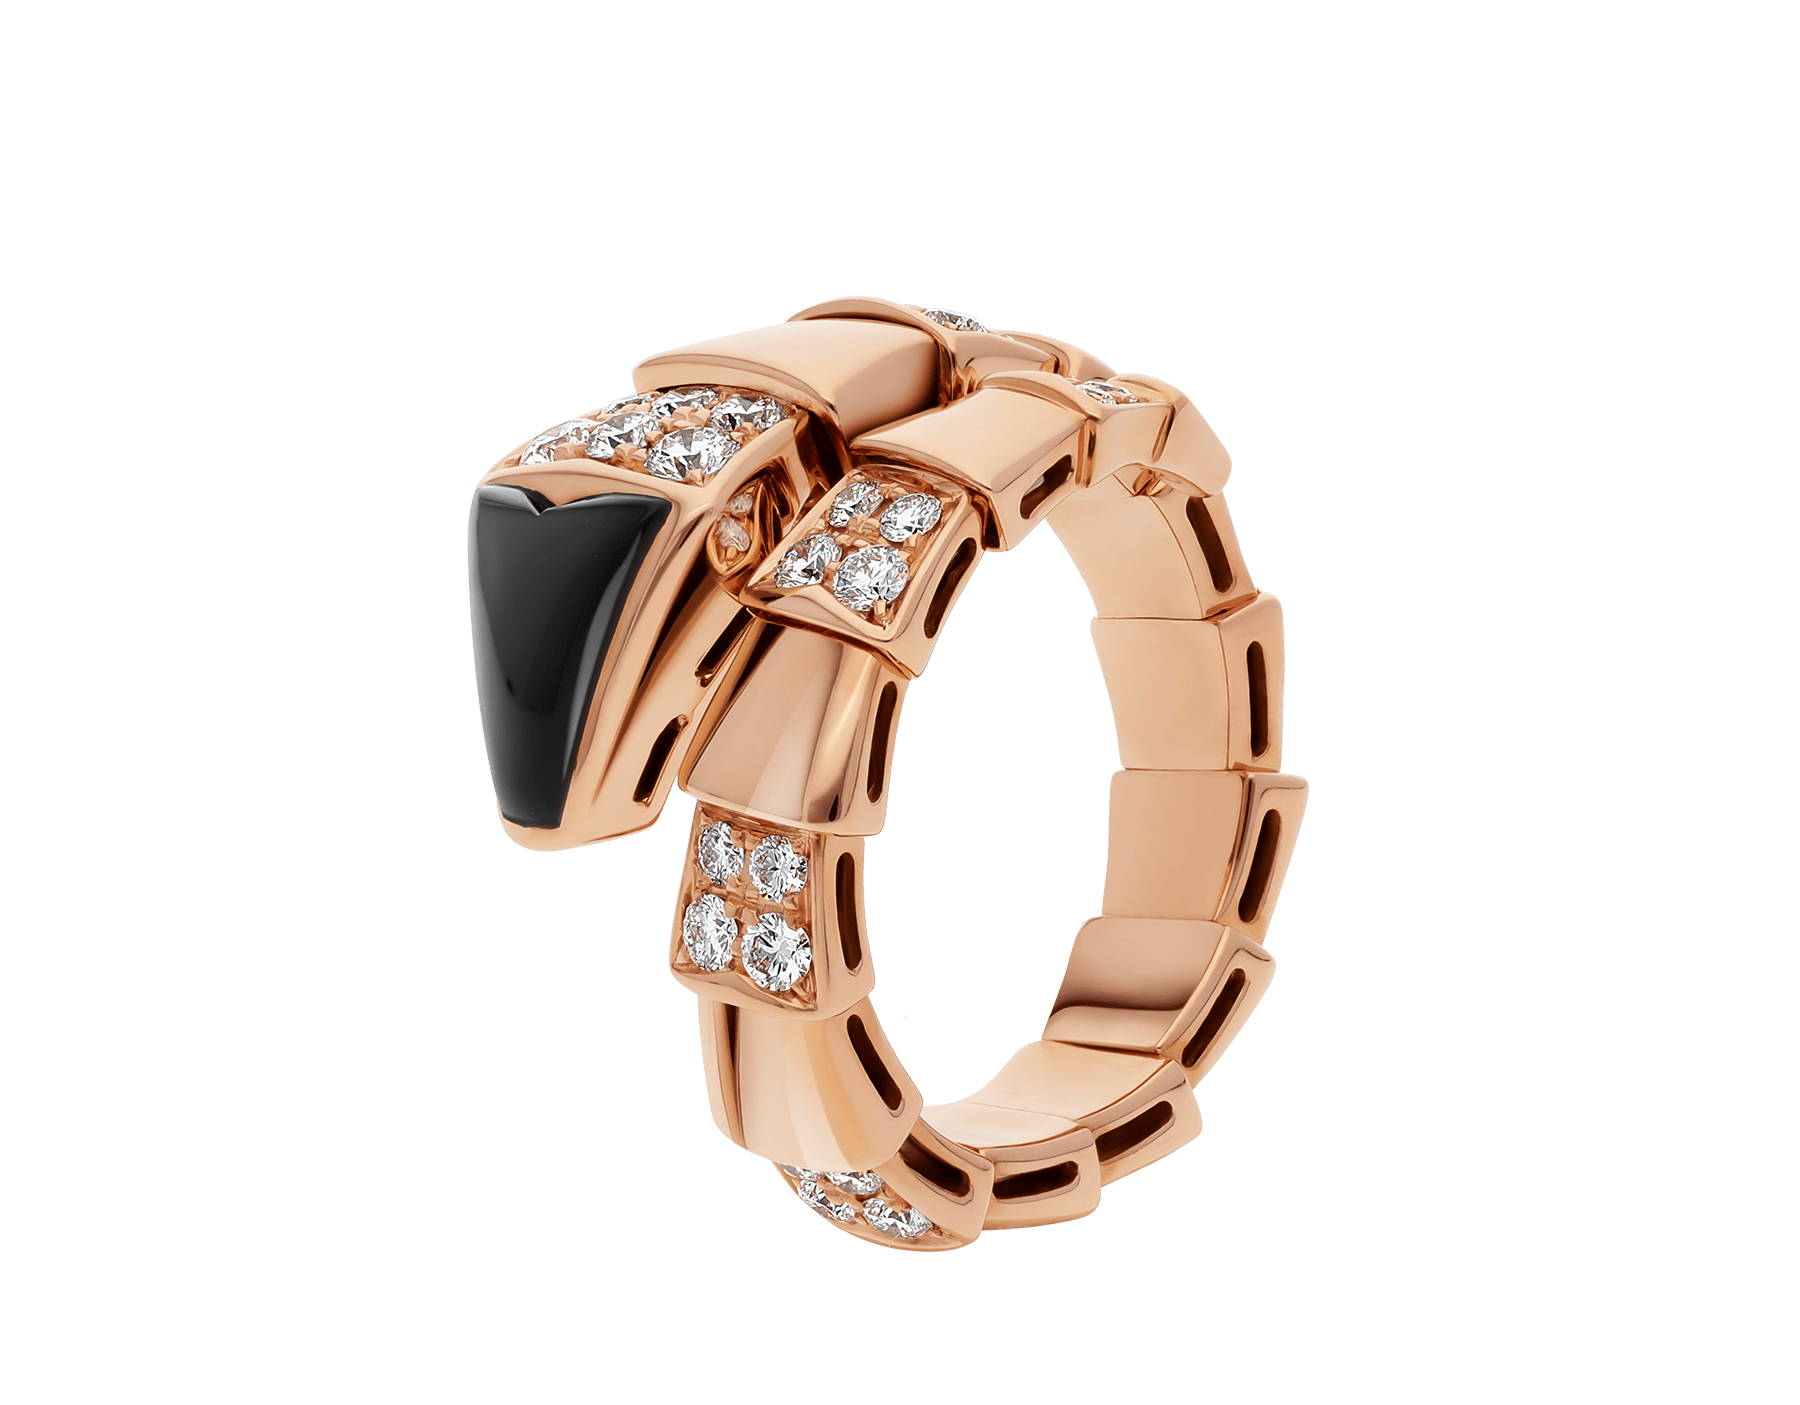 Serpenti one-coil ring in 18 kt rose gold, set with black onyx elements and demi pavé diamonds. AN855315 image 1